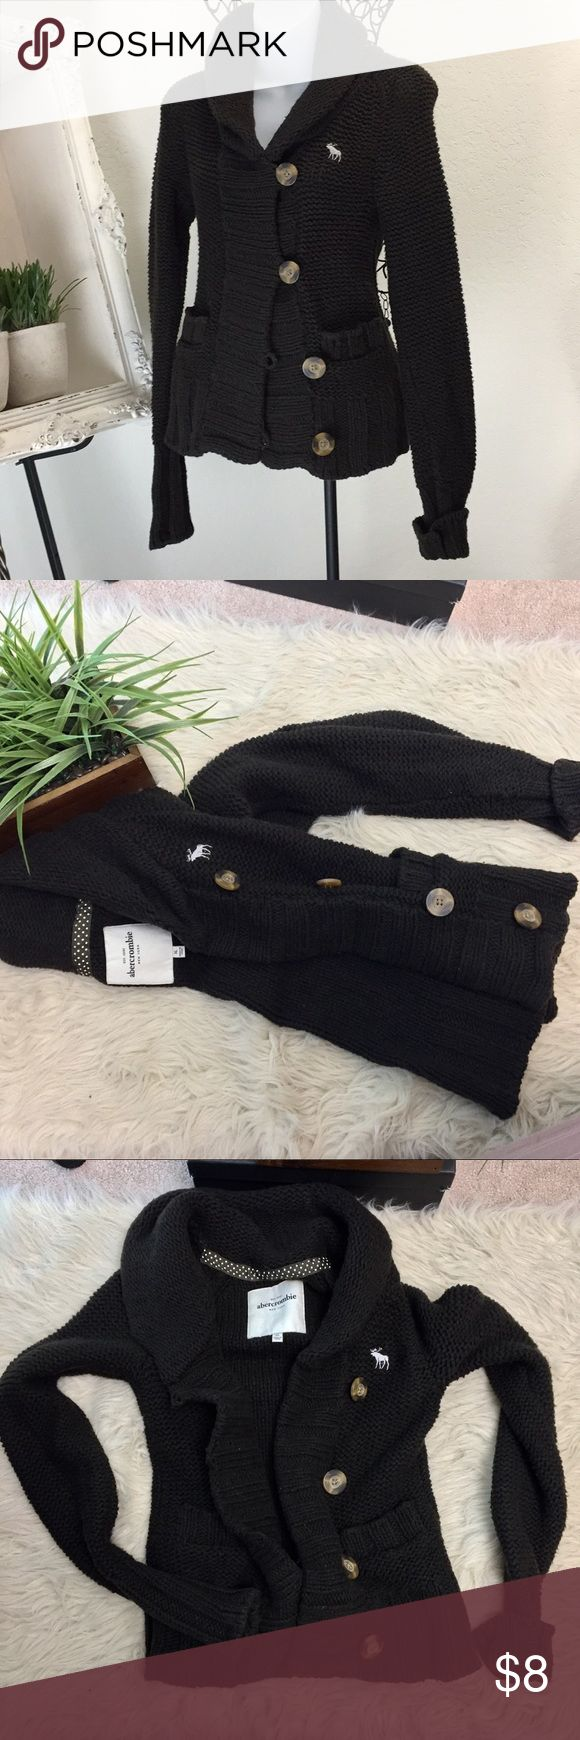 """abercrombie kids XL girls brown sweater Abercrombie xl brown sweater. In good condition- some slight wear / light pilling. But overall still in good shape! Super cute! Shawl collar: 13"""" pit to pit approx 21"""" length. abercrombie kids Shirts & Tops Sweaters"""